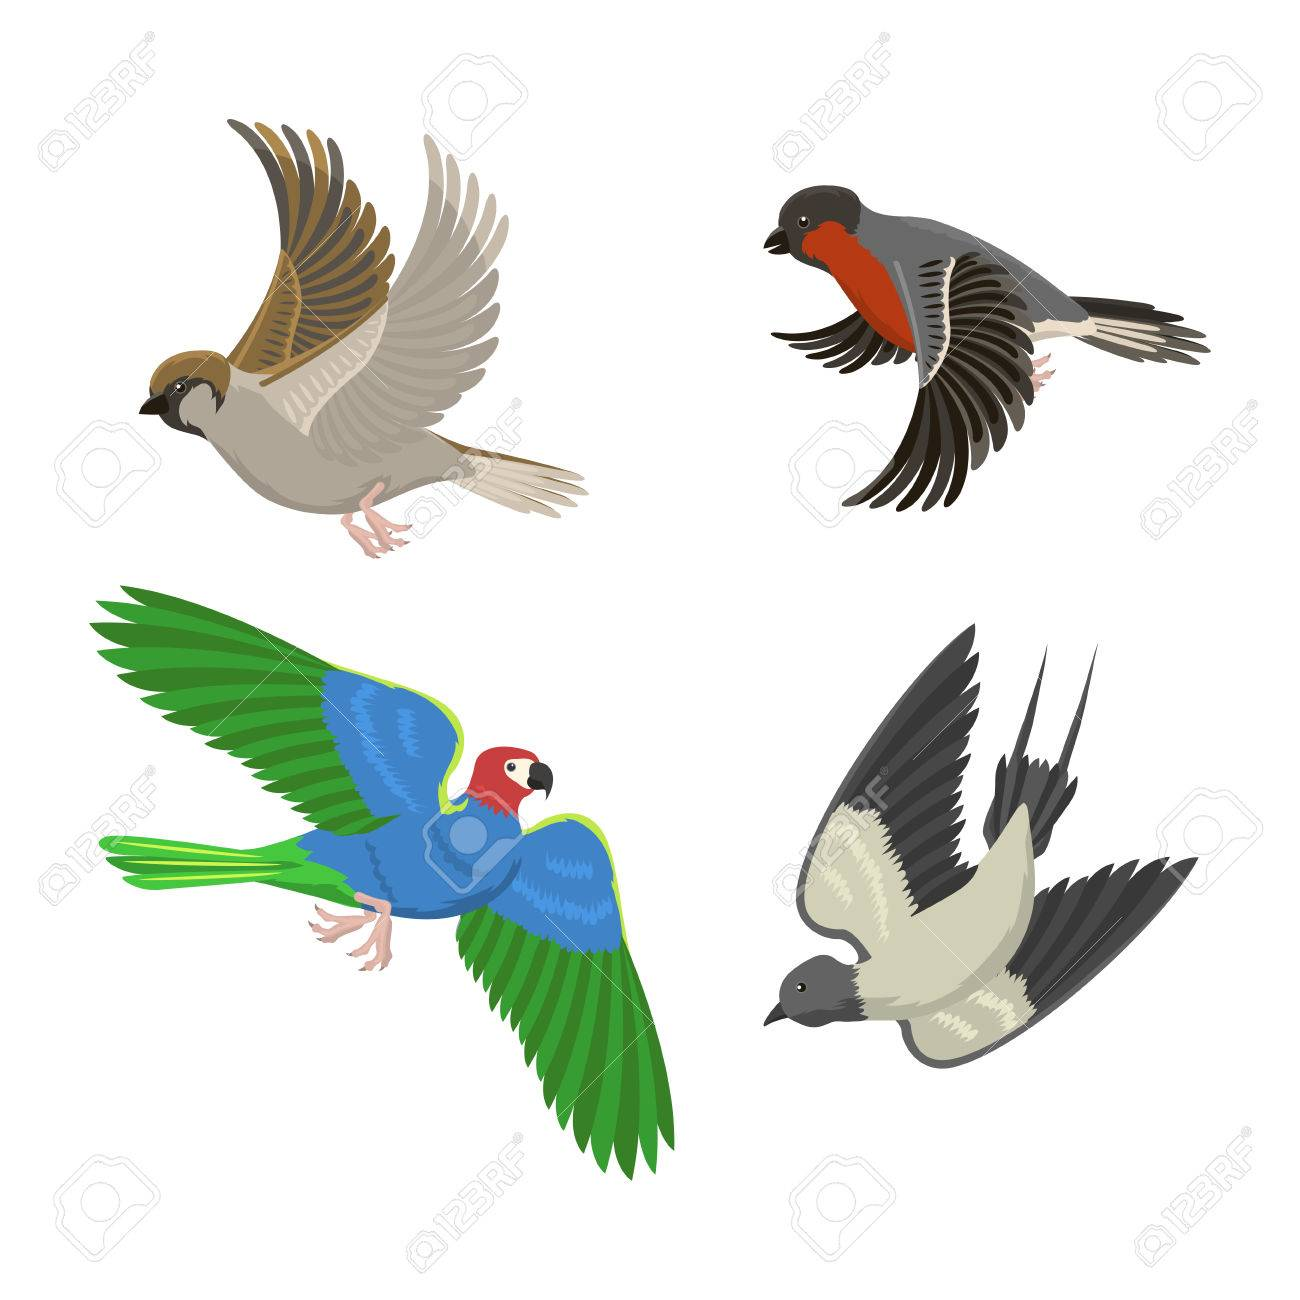 Set Of Different Flying Birds Vector Illustration Royalty Free Cliparts Vectors And Stock Illustration Image 71719175